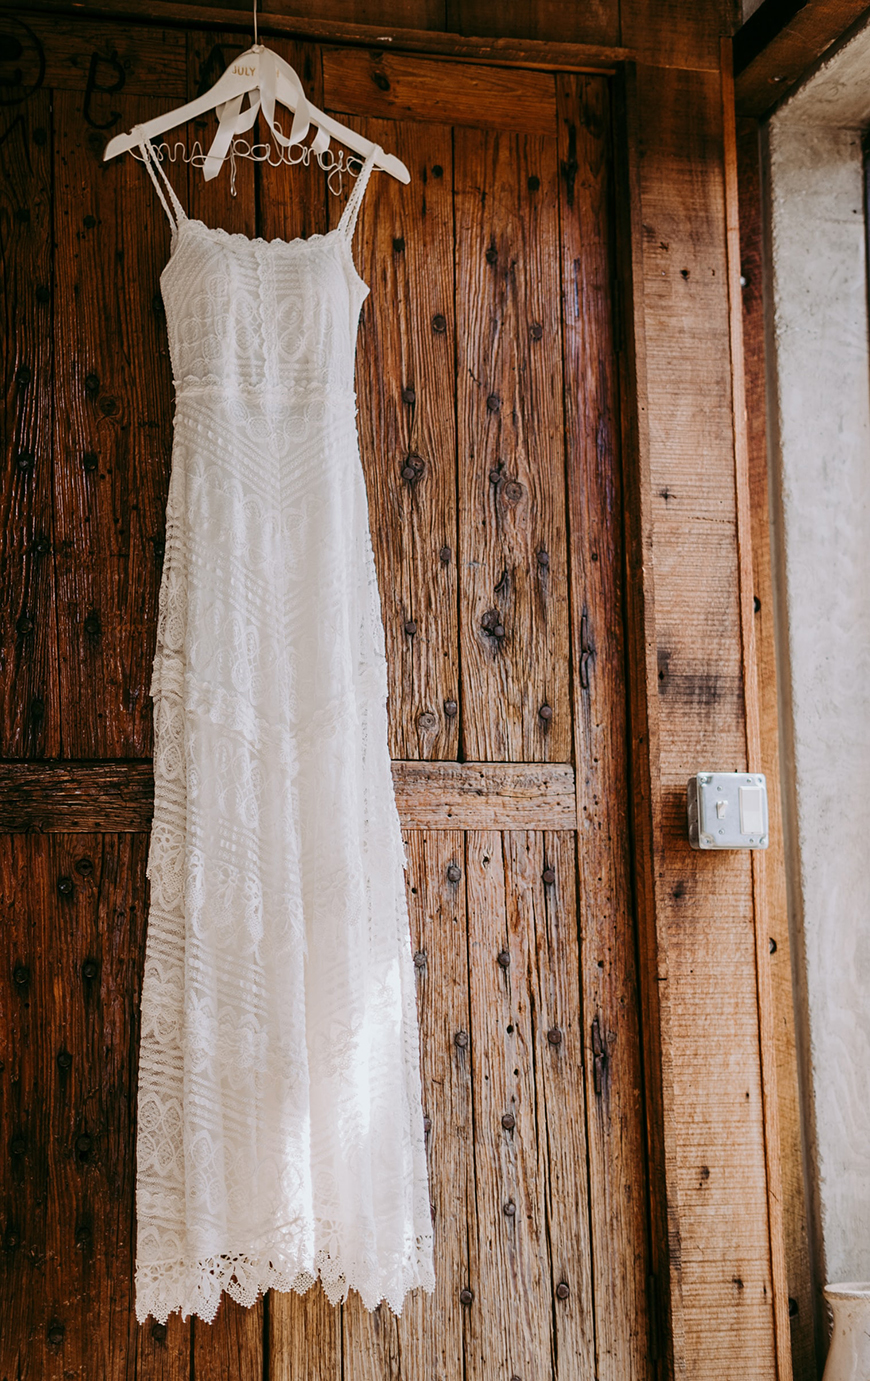 12 Colourful Summer Wedding Ideas - Linen and lace | CHWV